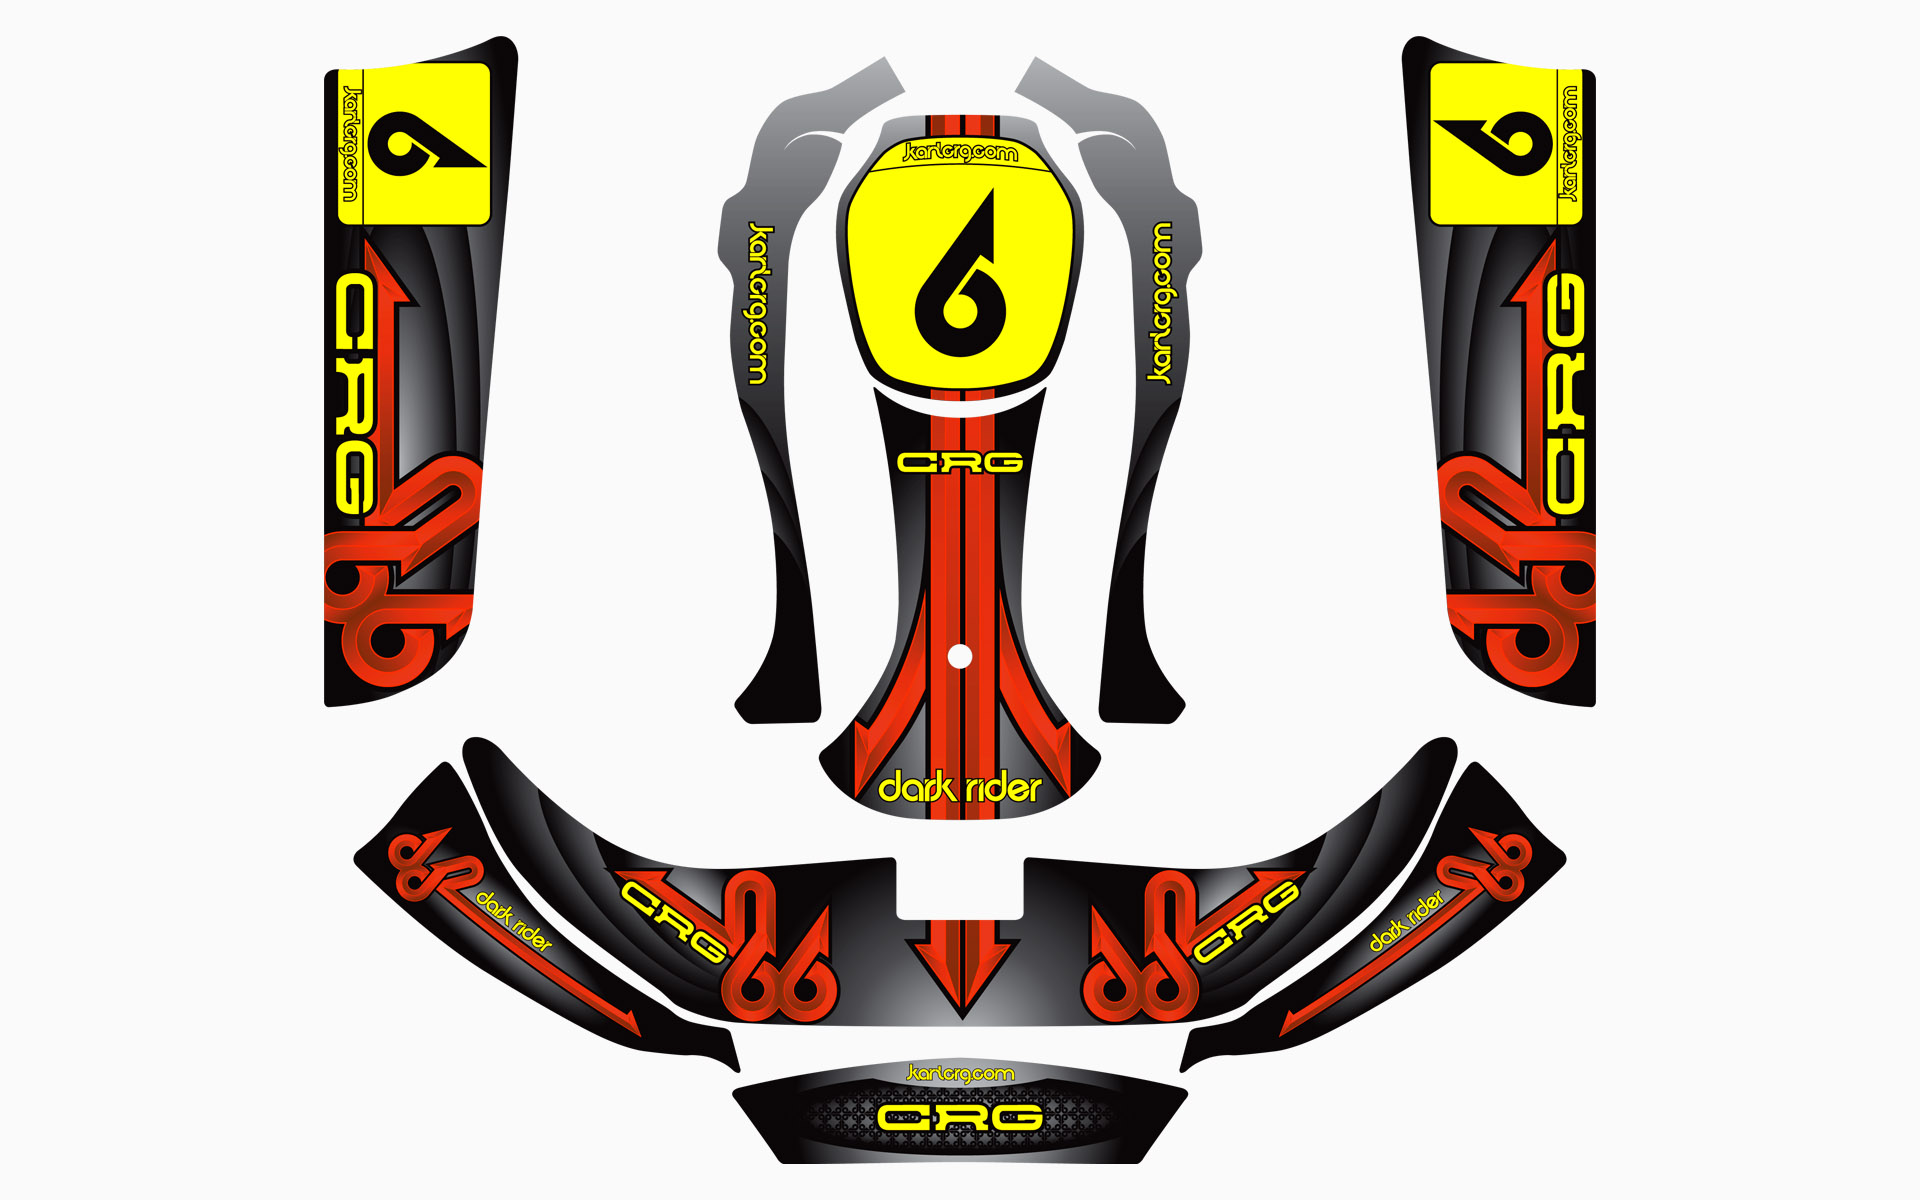 CRG Dark Rider Factory Kart Livery Decal Kit